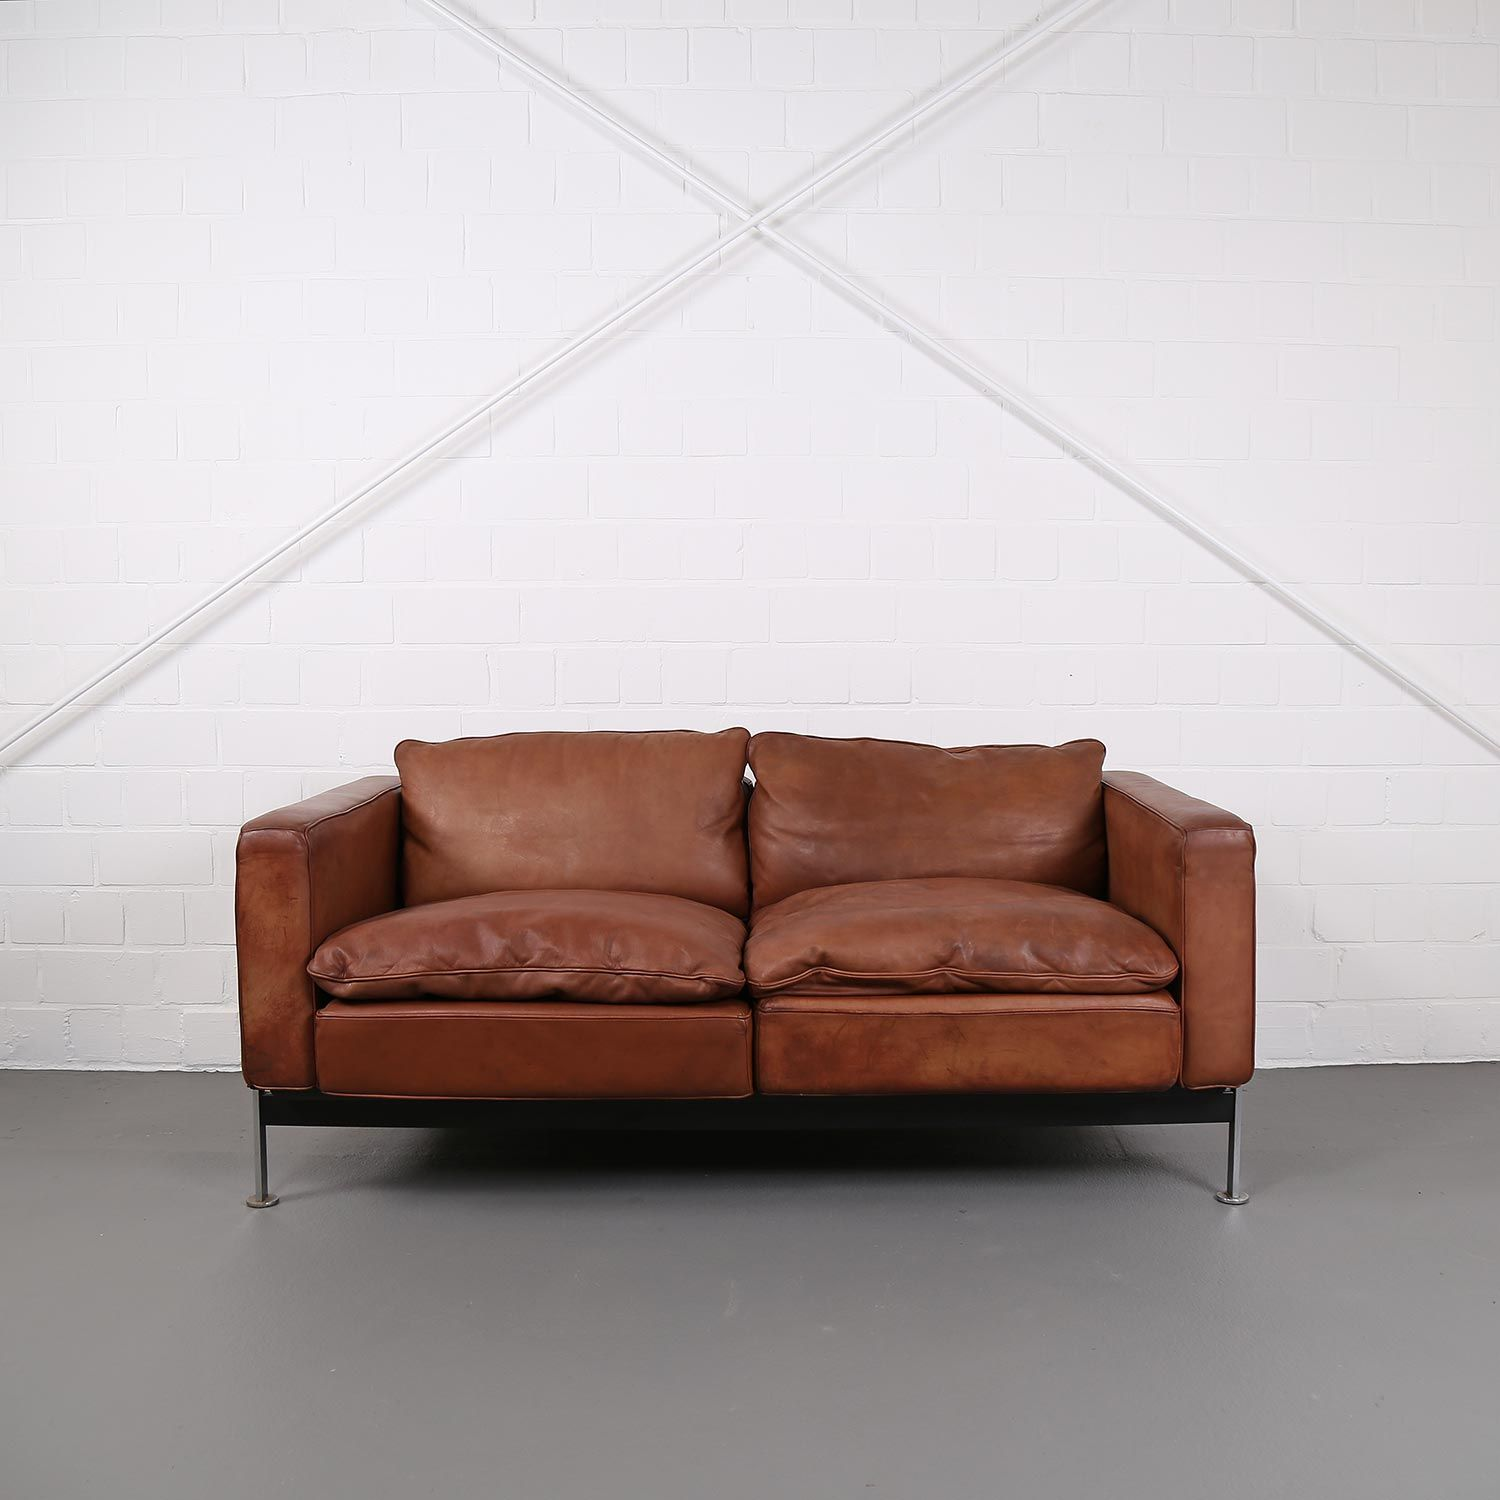 Vintage Modular Leather Sofa from Dreipunkt International COR ...